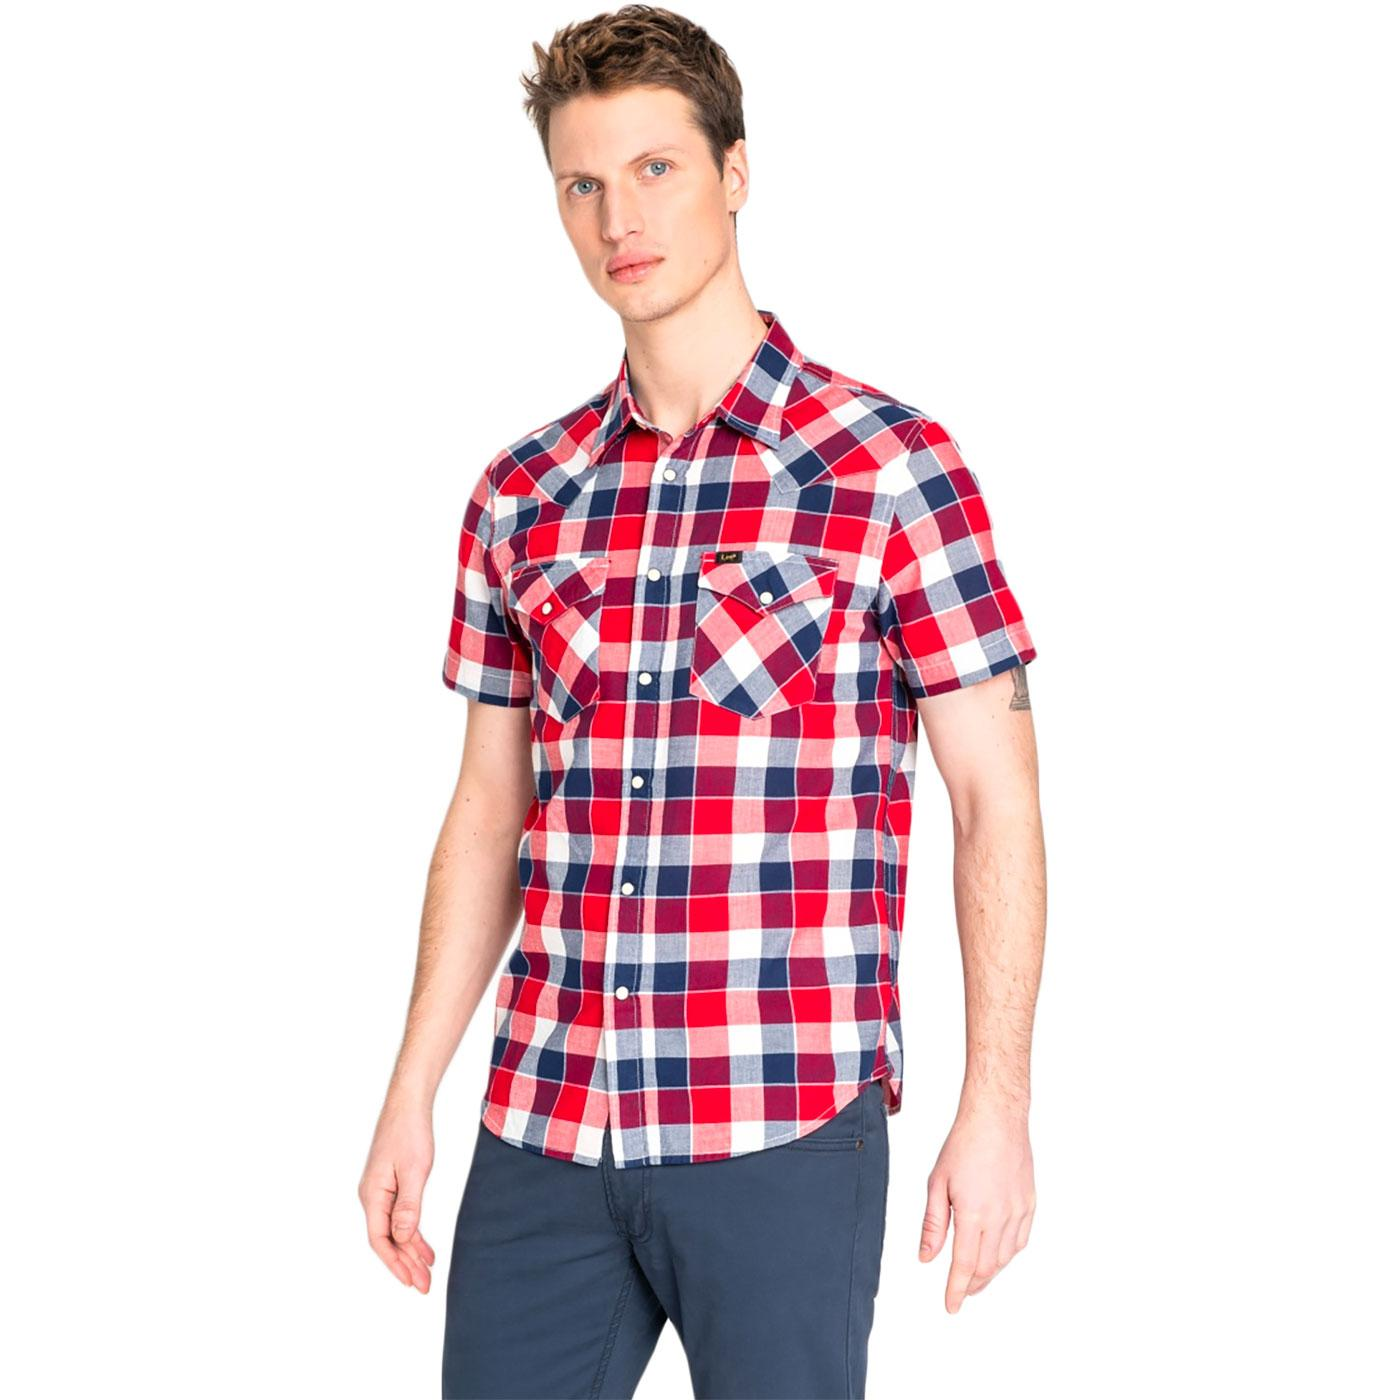 LEE Retro Mod SS Check Western Shirt (Bright Red)